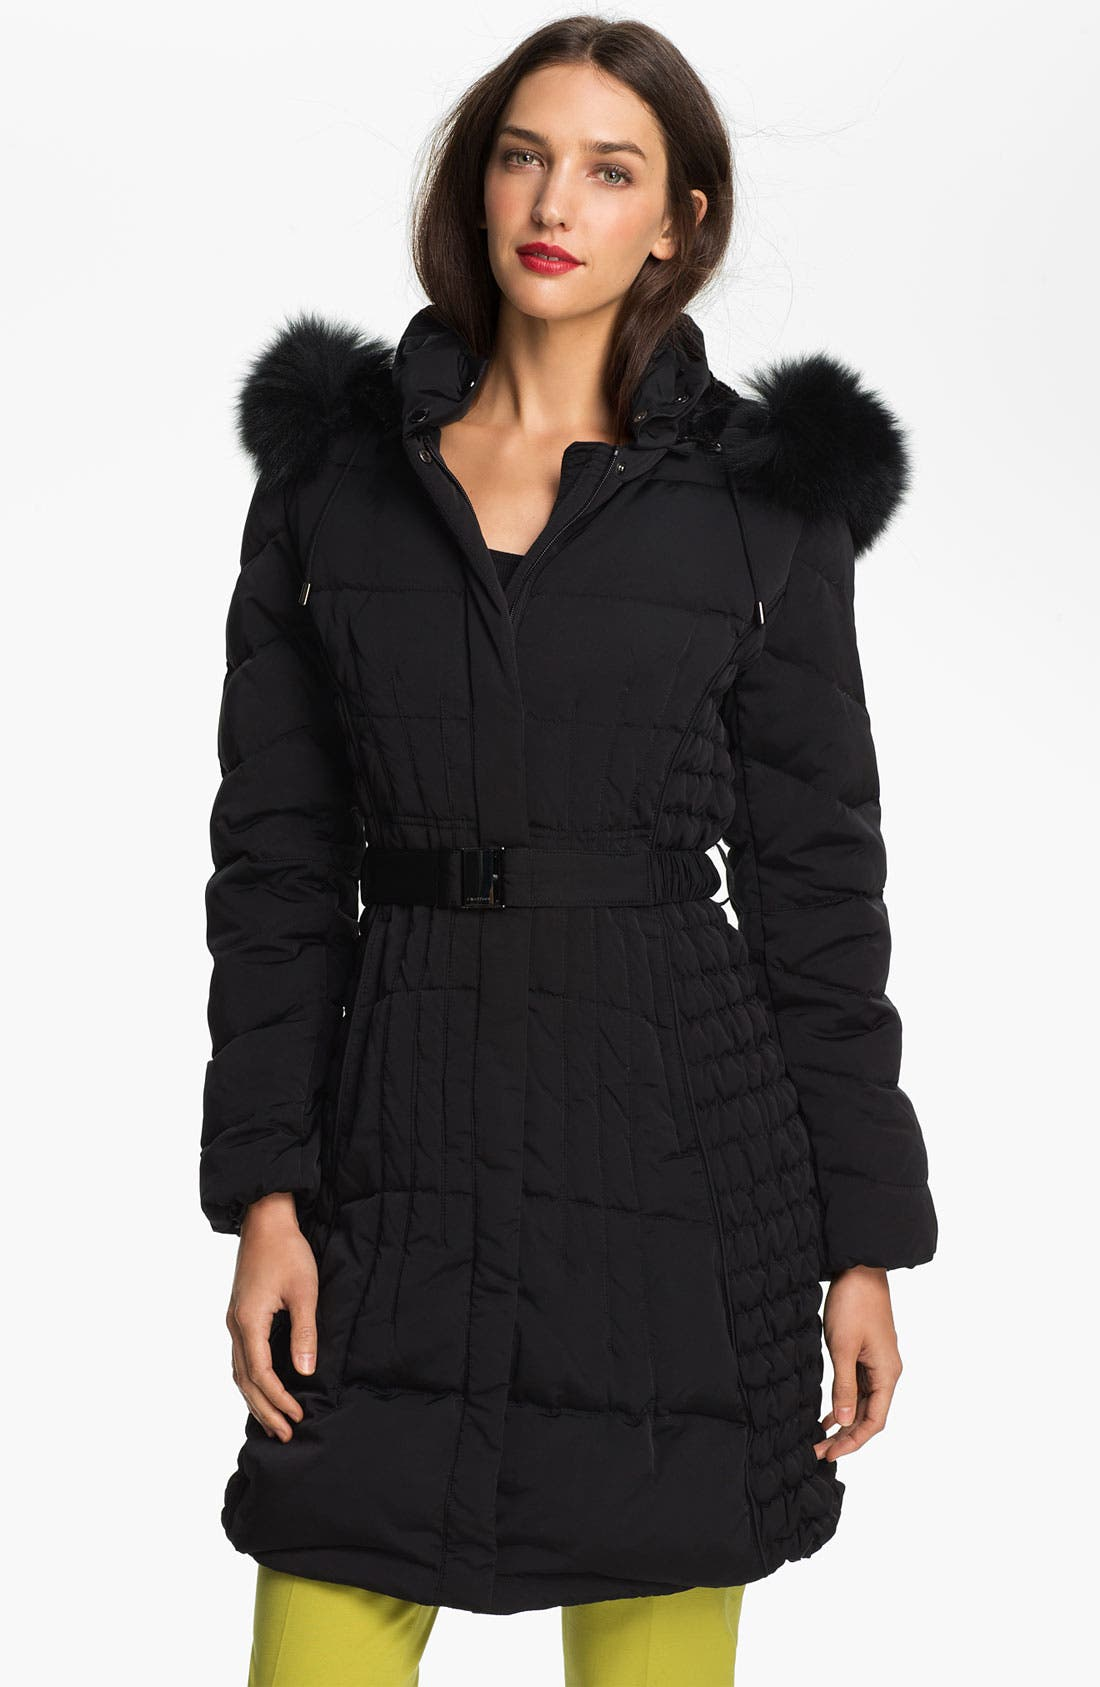 Main Image - 1 Madison Quilted Coat with Genuine Fox Fur